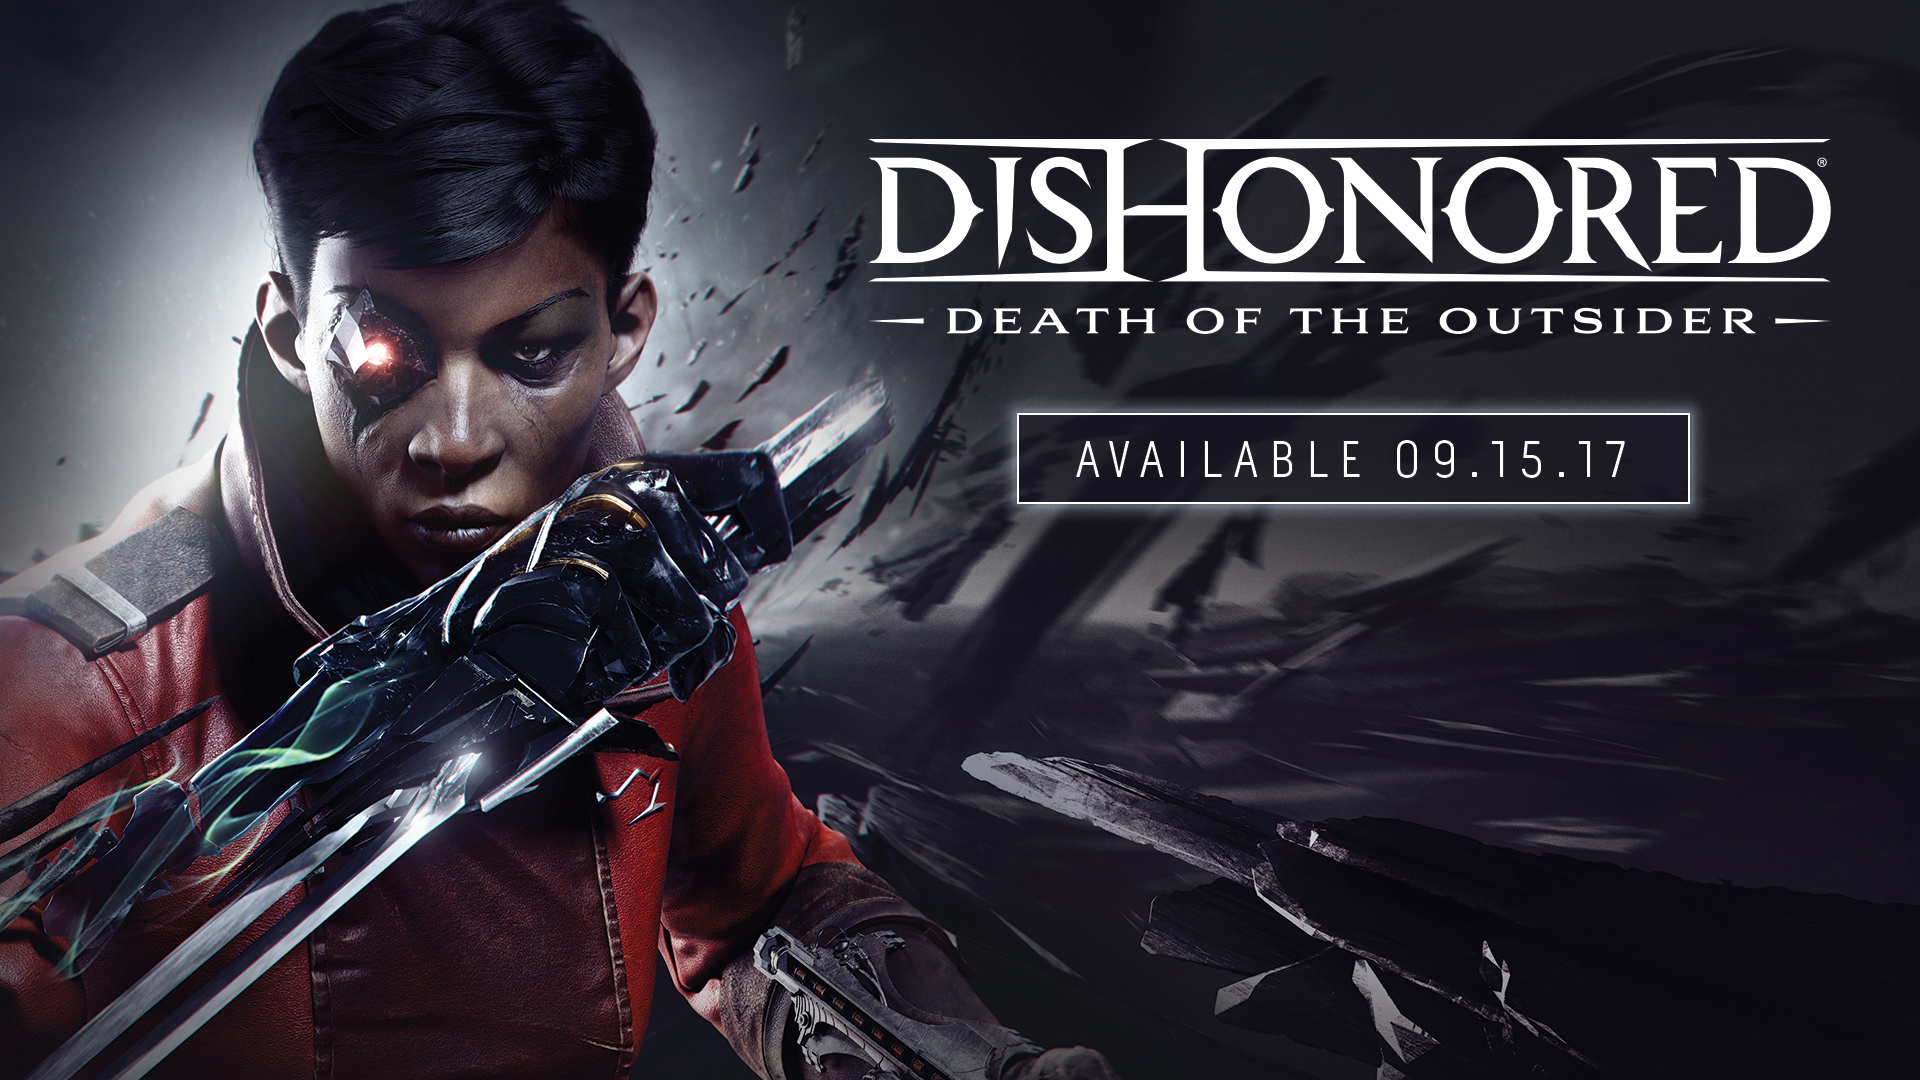 game hay - elle man - DISHONORED DEATH OF THE OUTSIDER